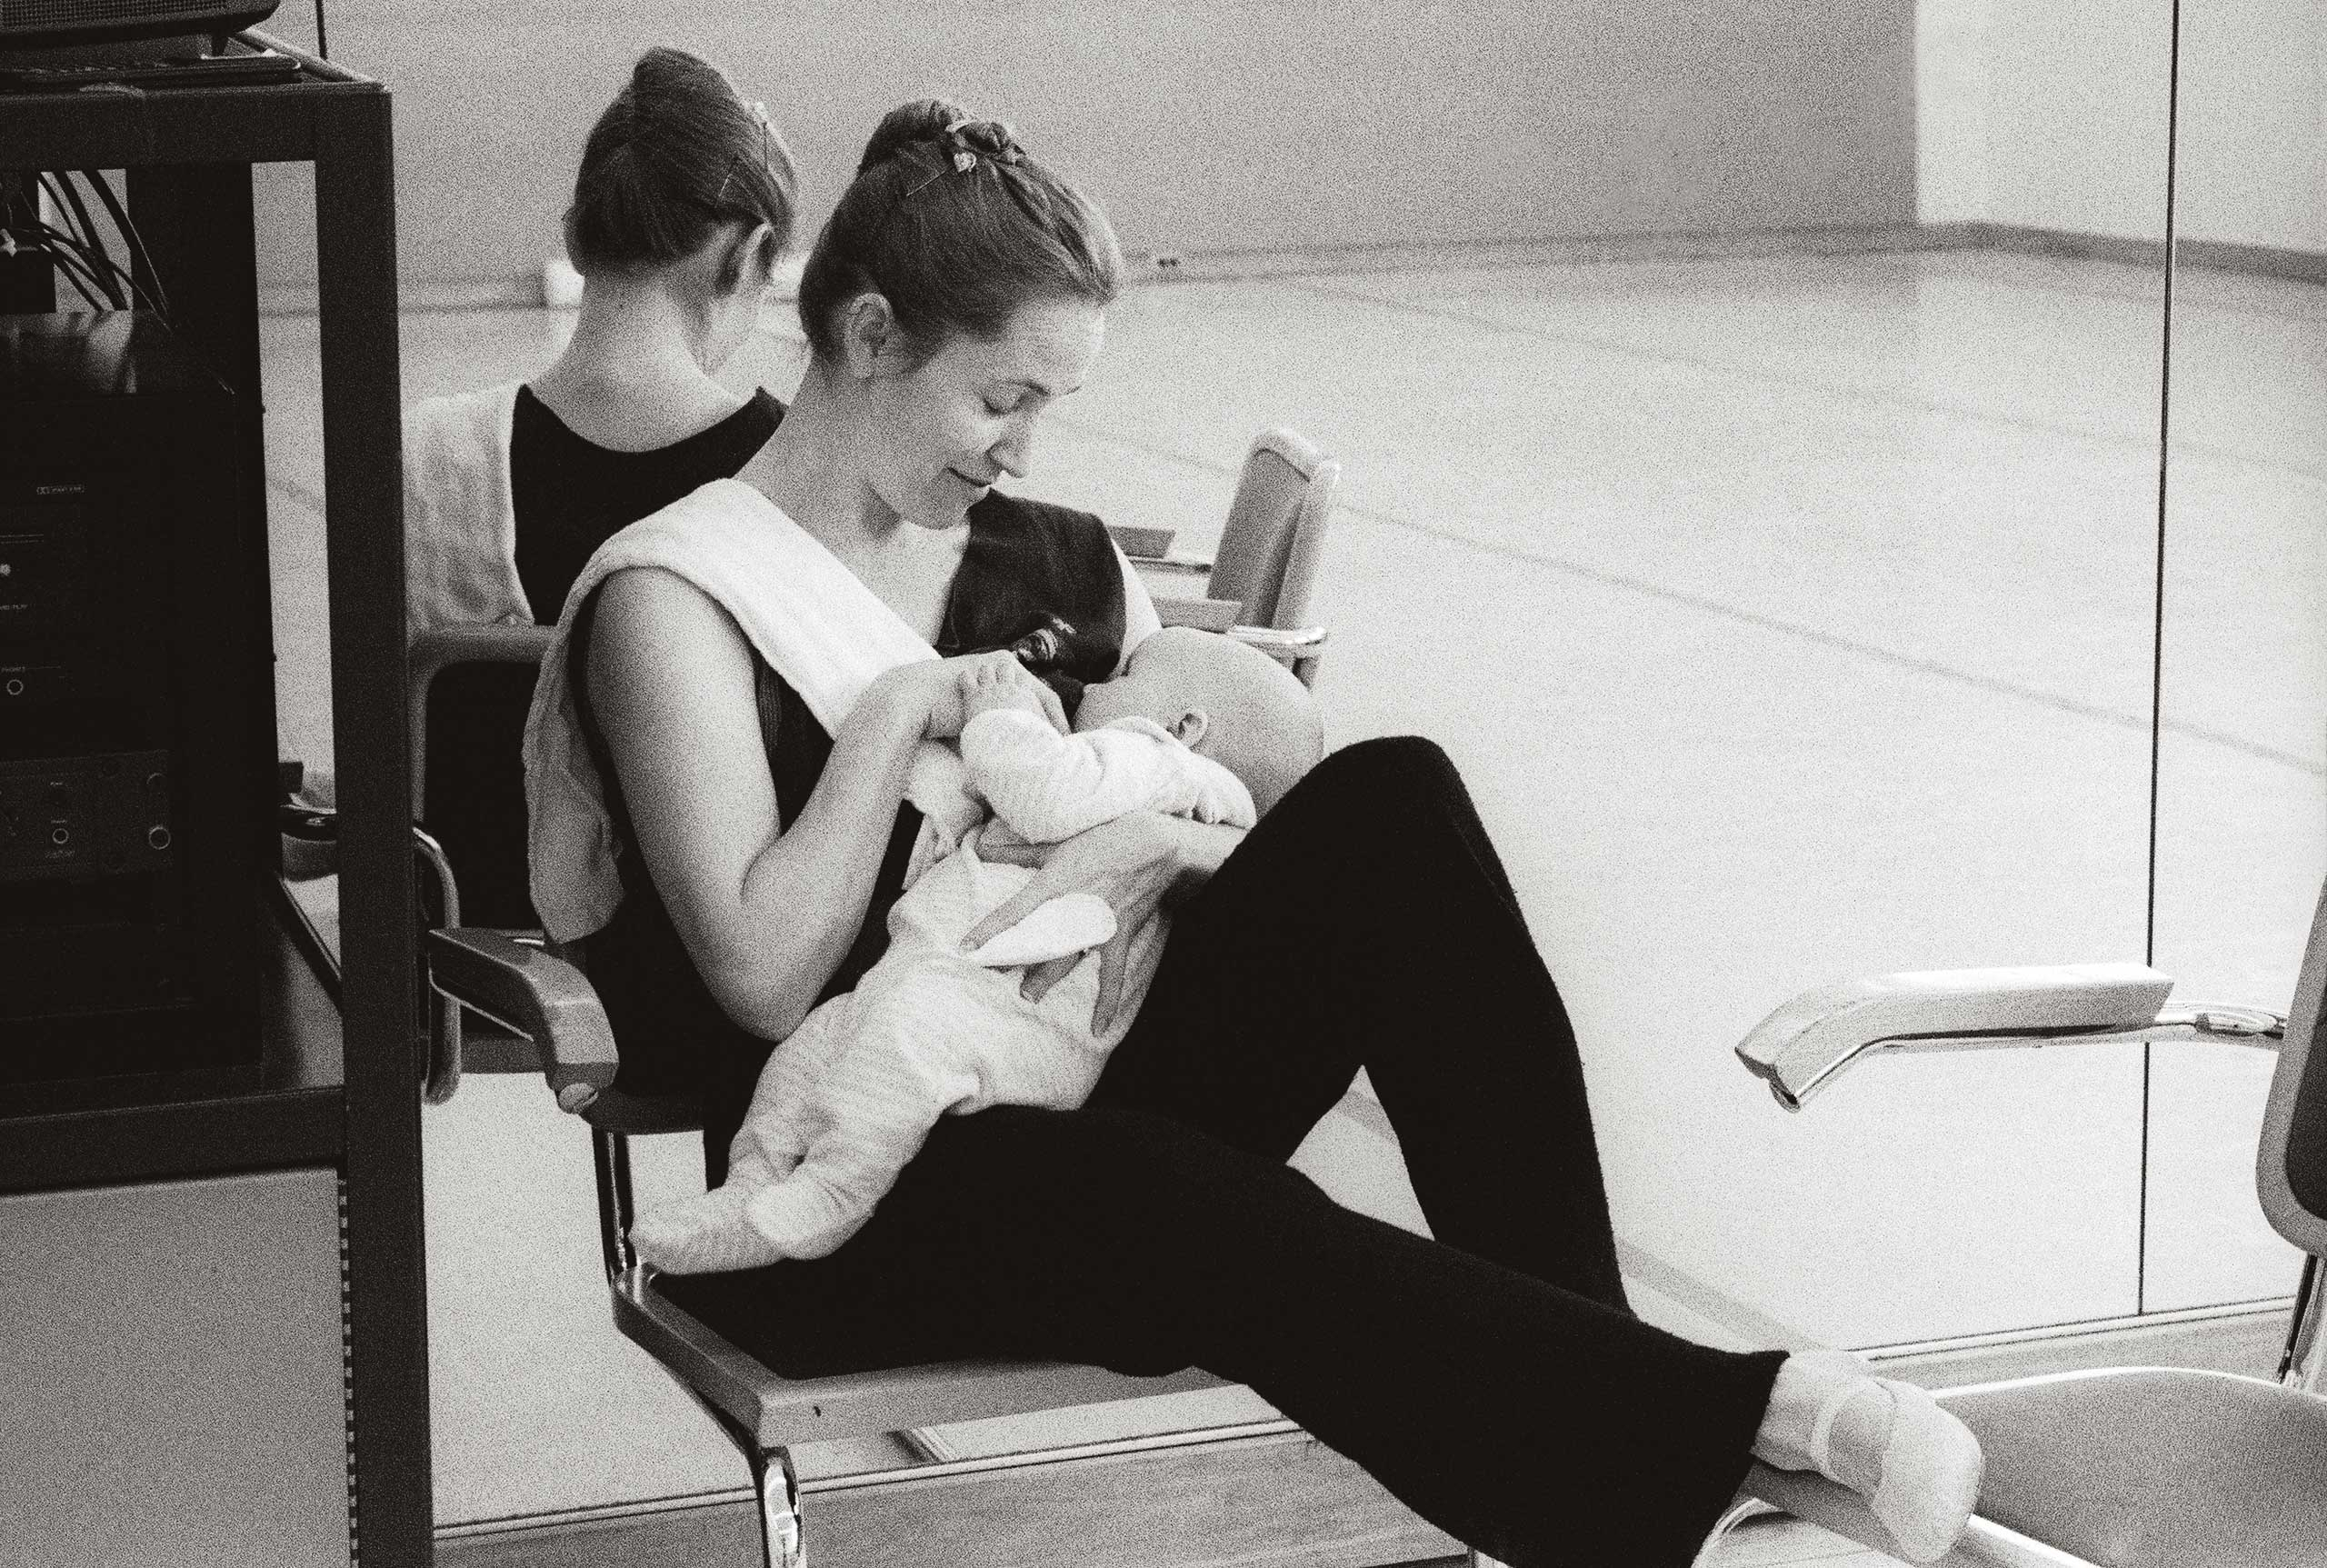 Tina feeds six-week-old Sasha in the rehearsal studio at San Francisco Ballet. 2003. Balancing Acts: Three Prima Ballerinas Becoming Mothers.